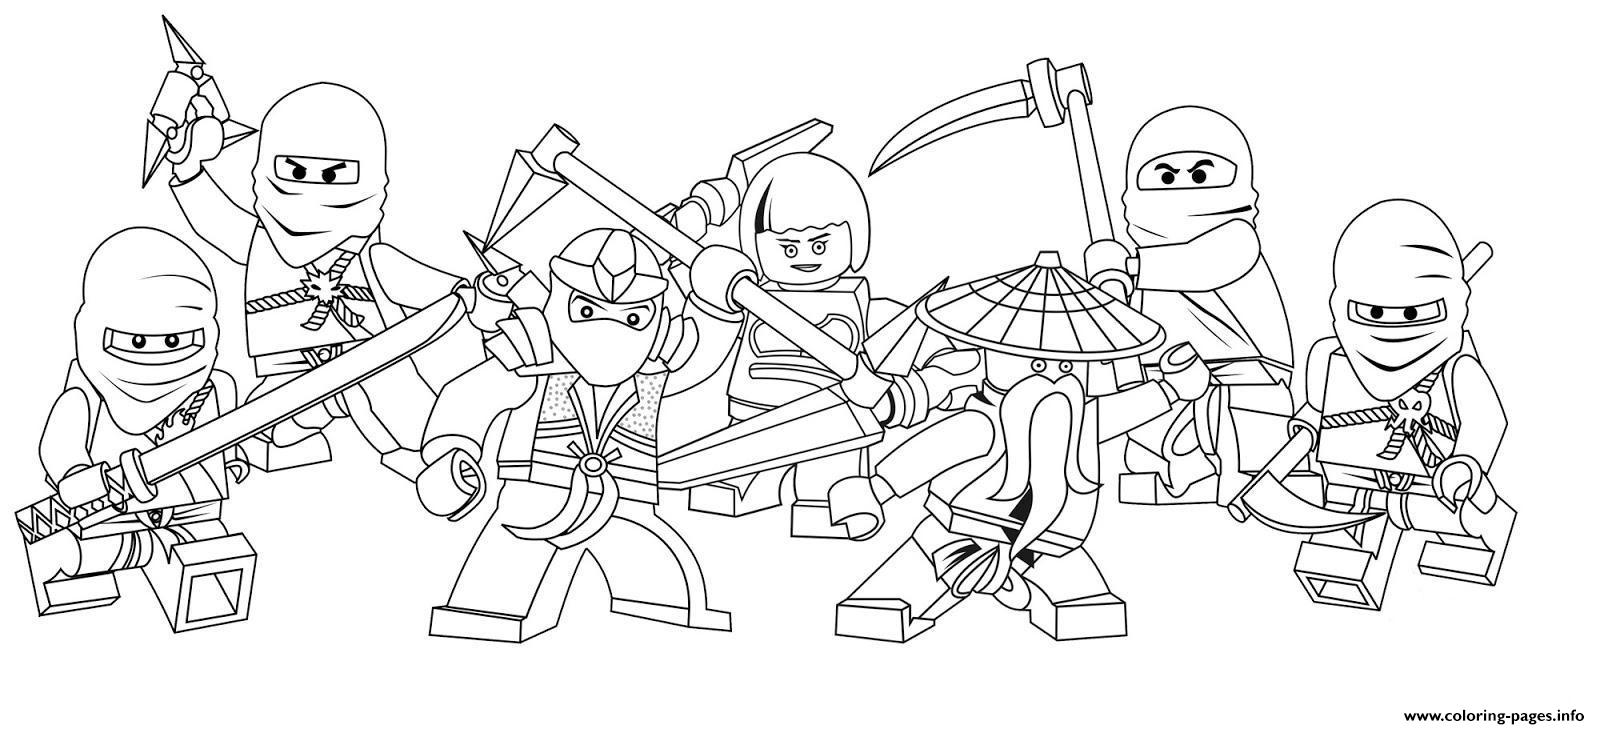 Characters Of Ninjago Secc8 coloring pages